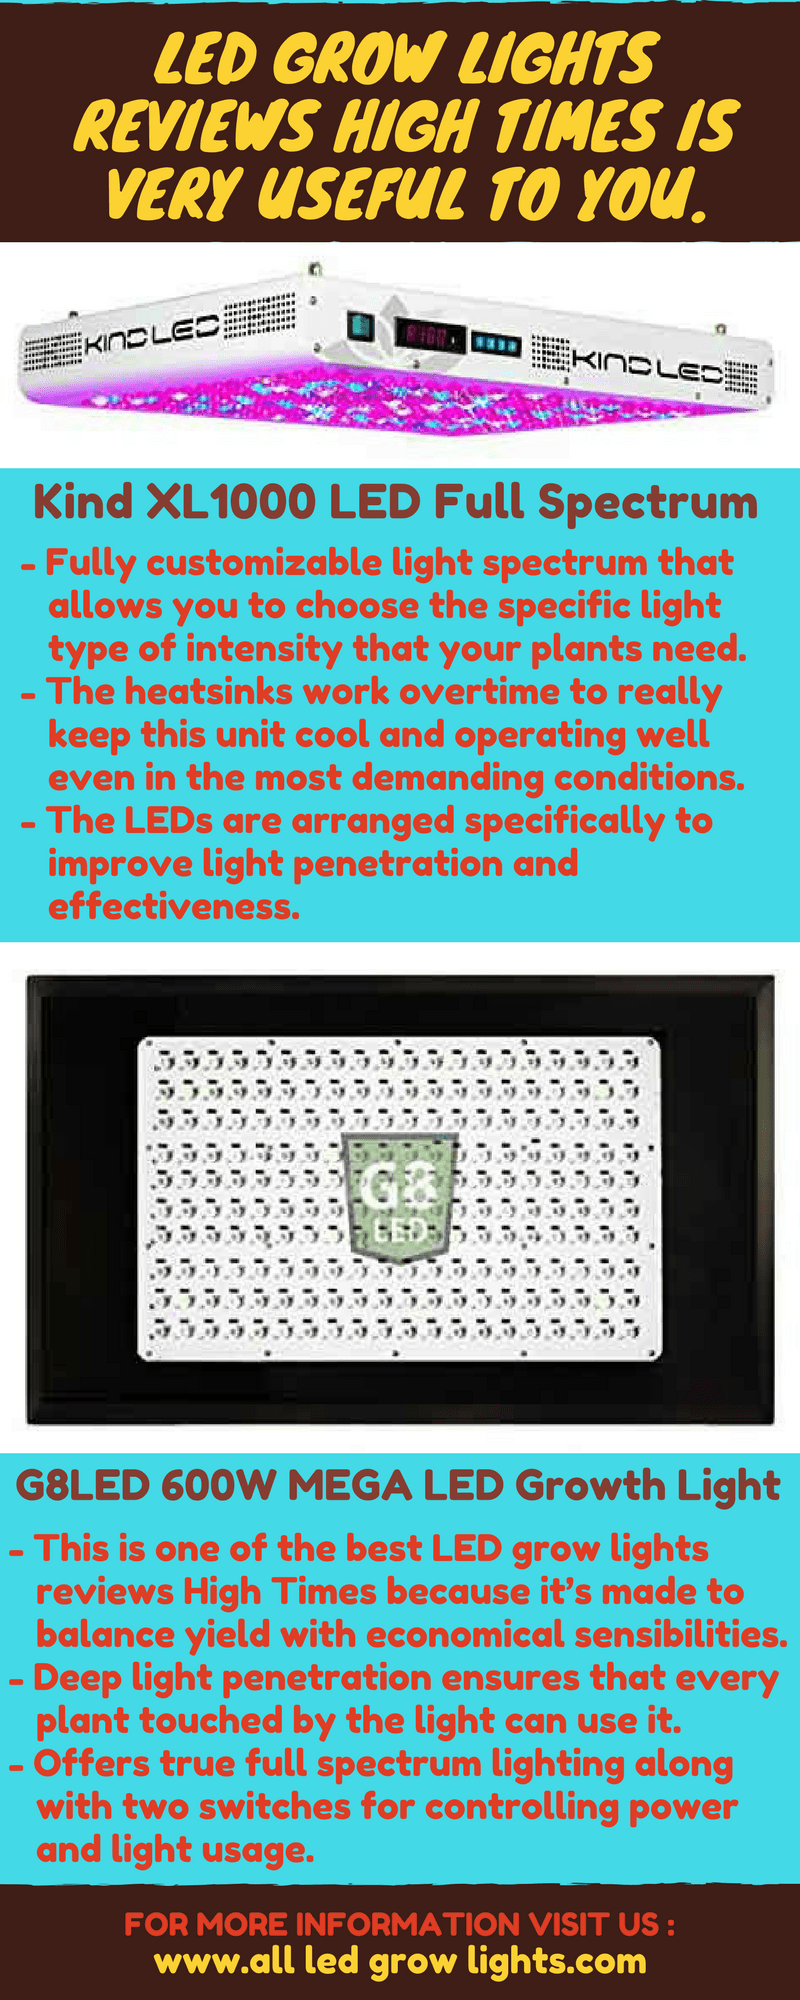 Superior Led Grow Light Review High Times Infographic Pictures Gallery